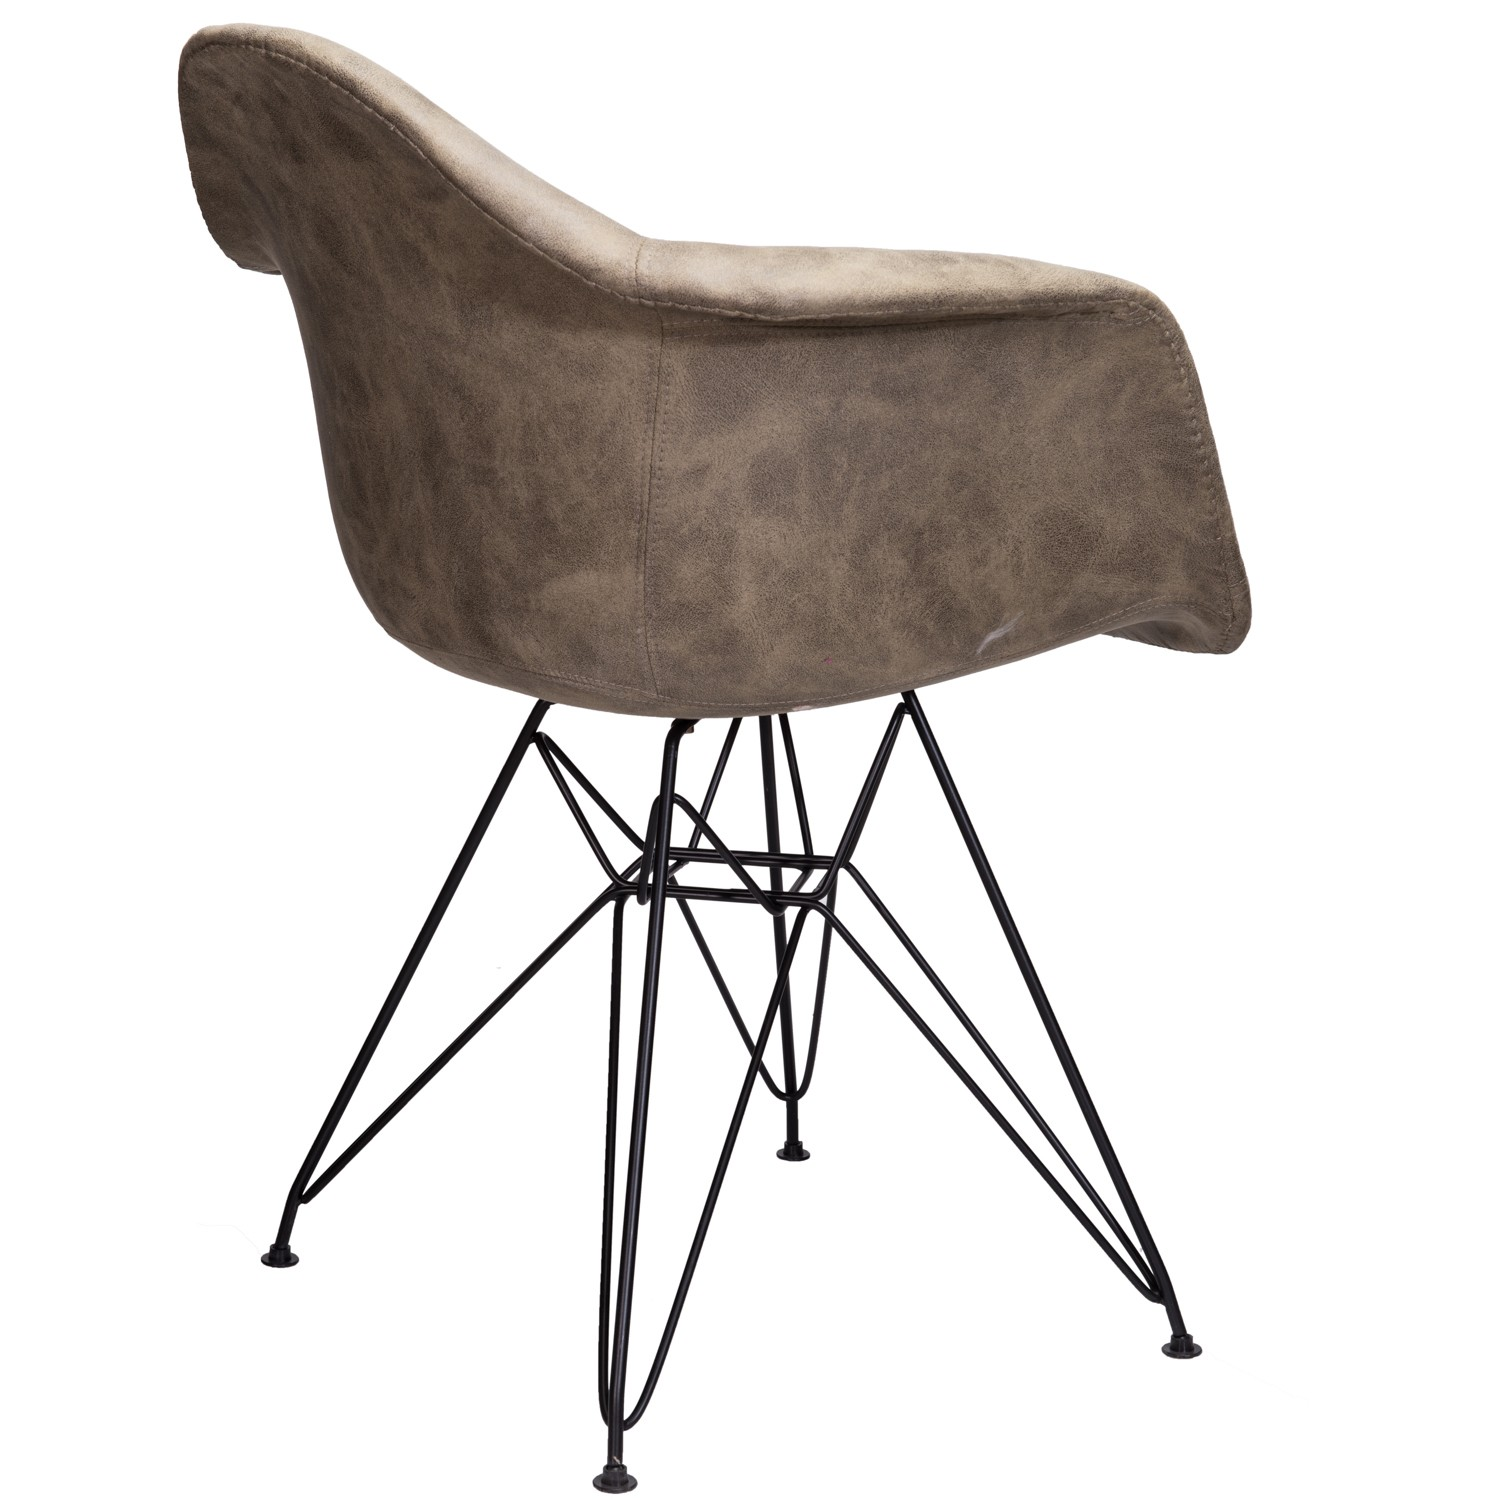 Markle Light Brown Leatherette Fabric Upholstered Daw